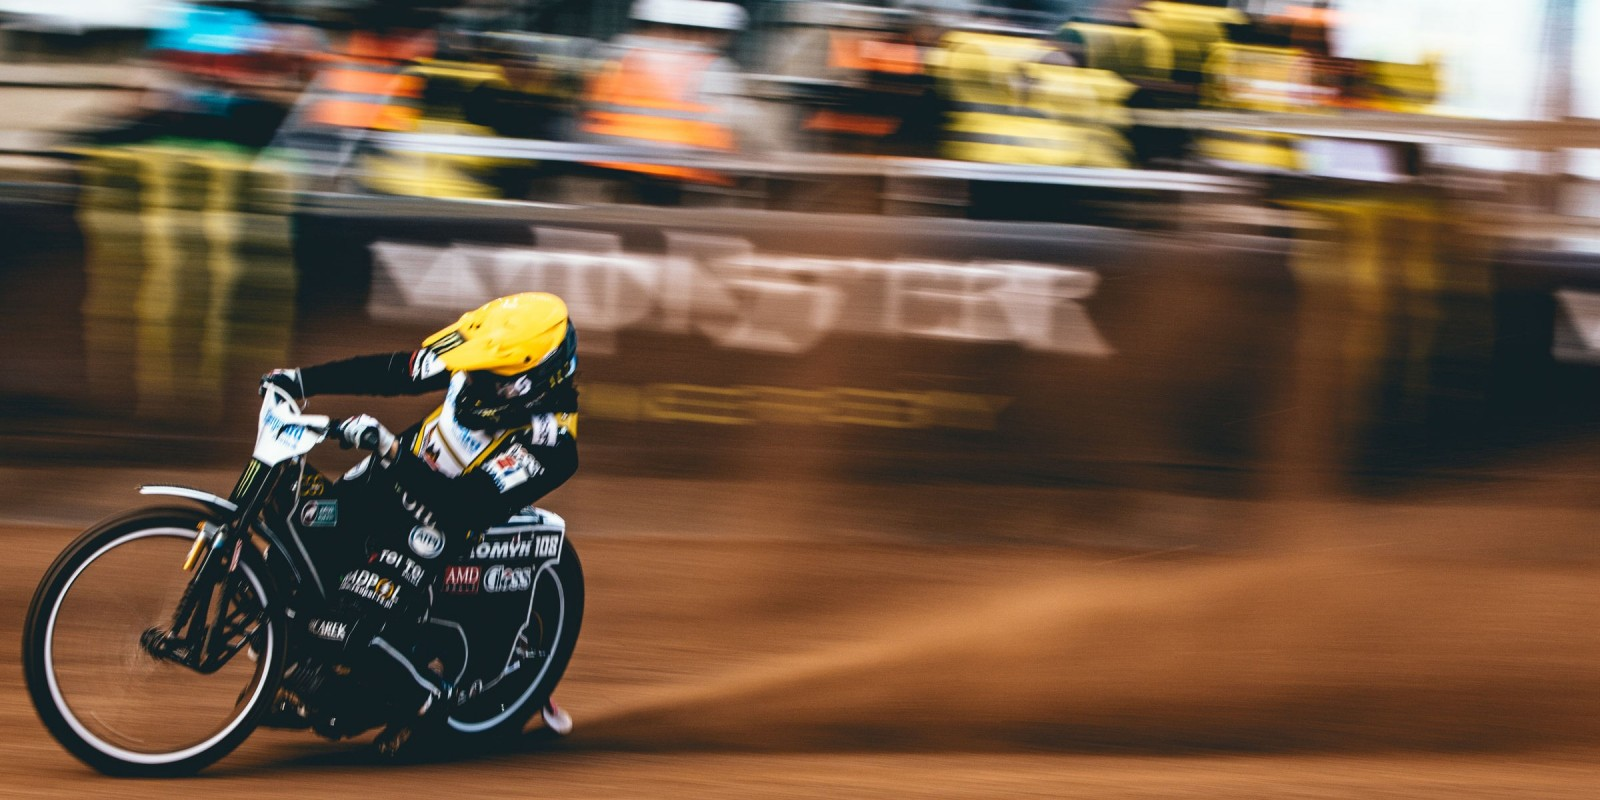 Images of Tai Woffinden from the Danish SGP